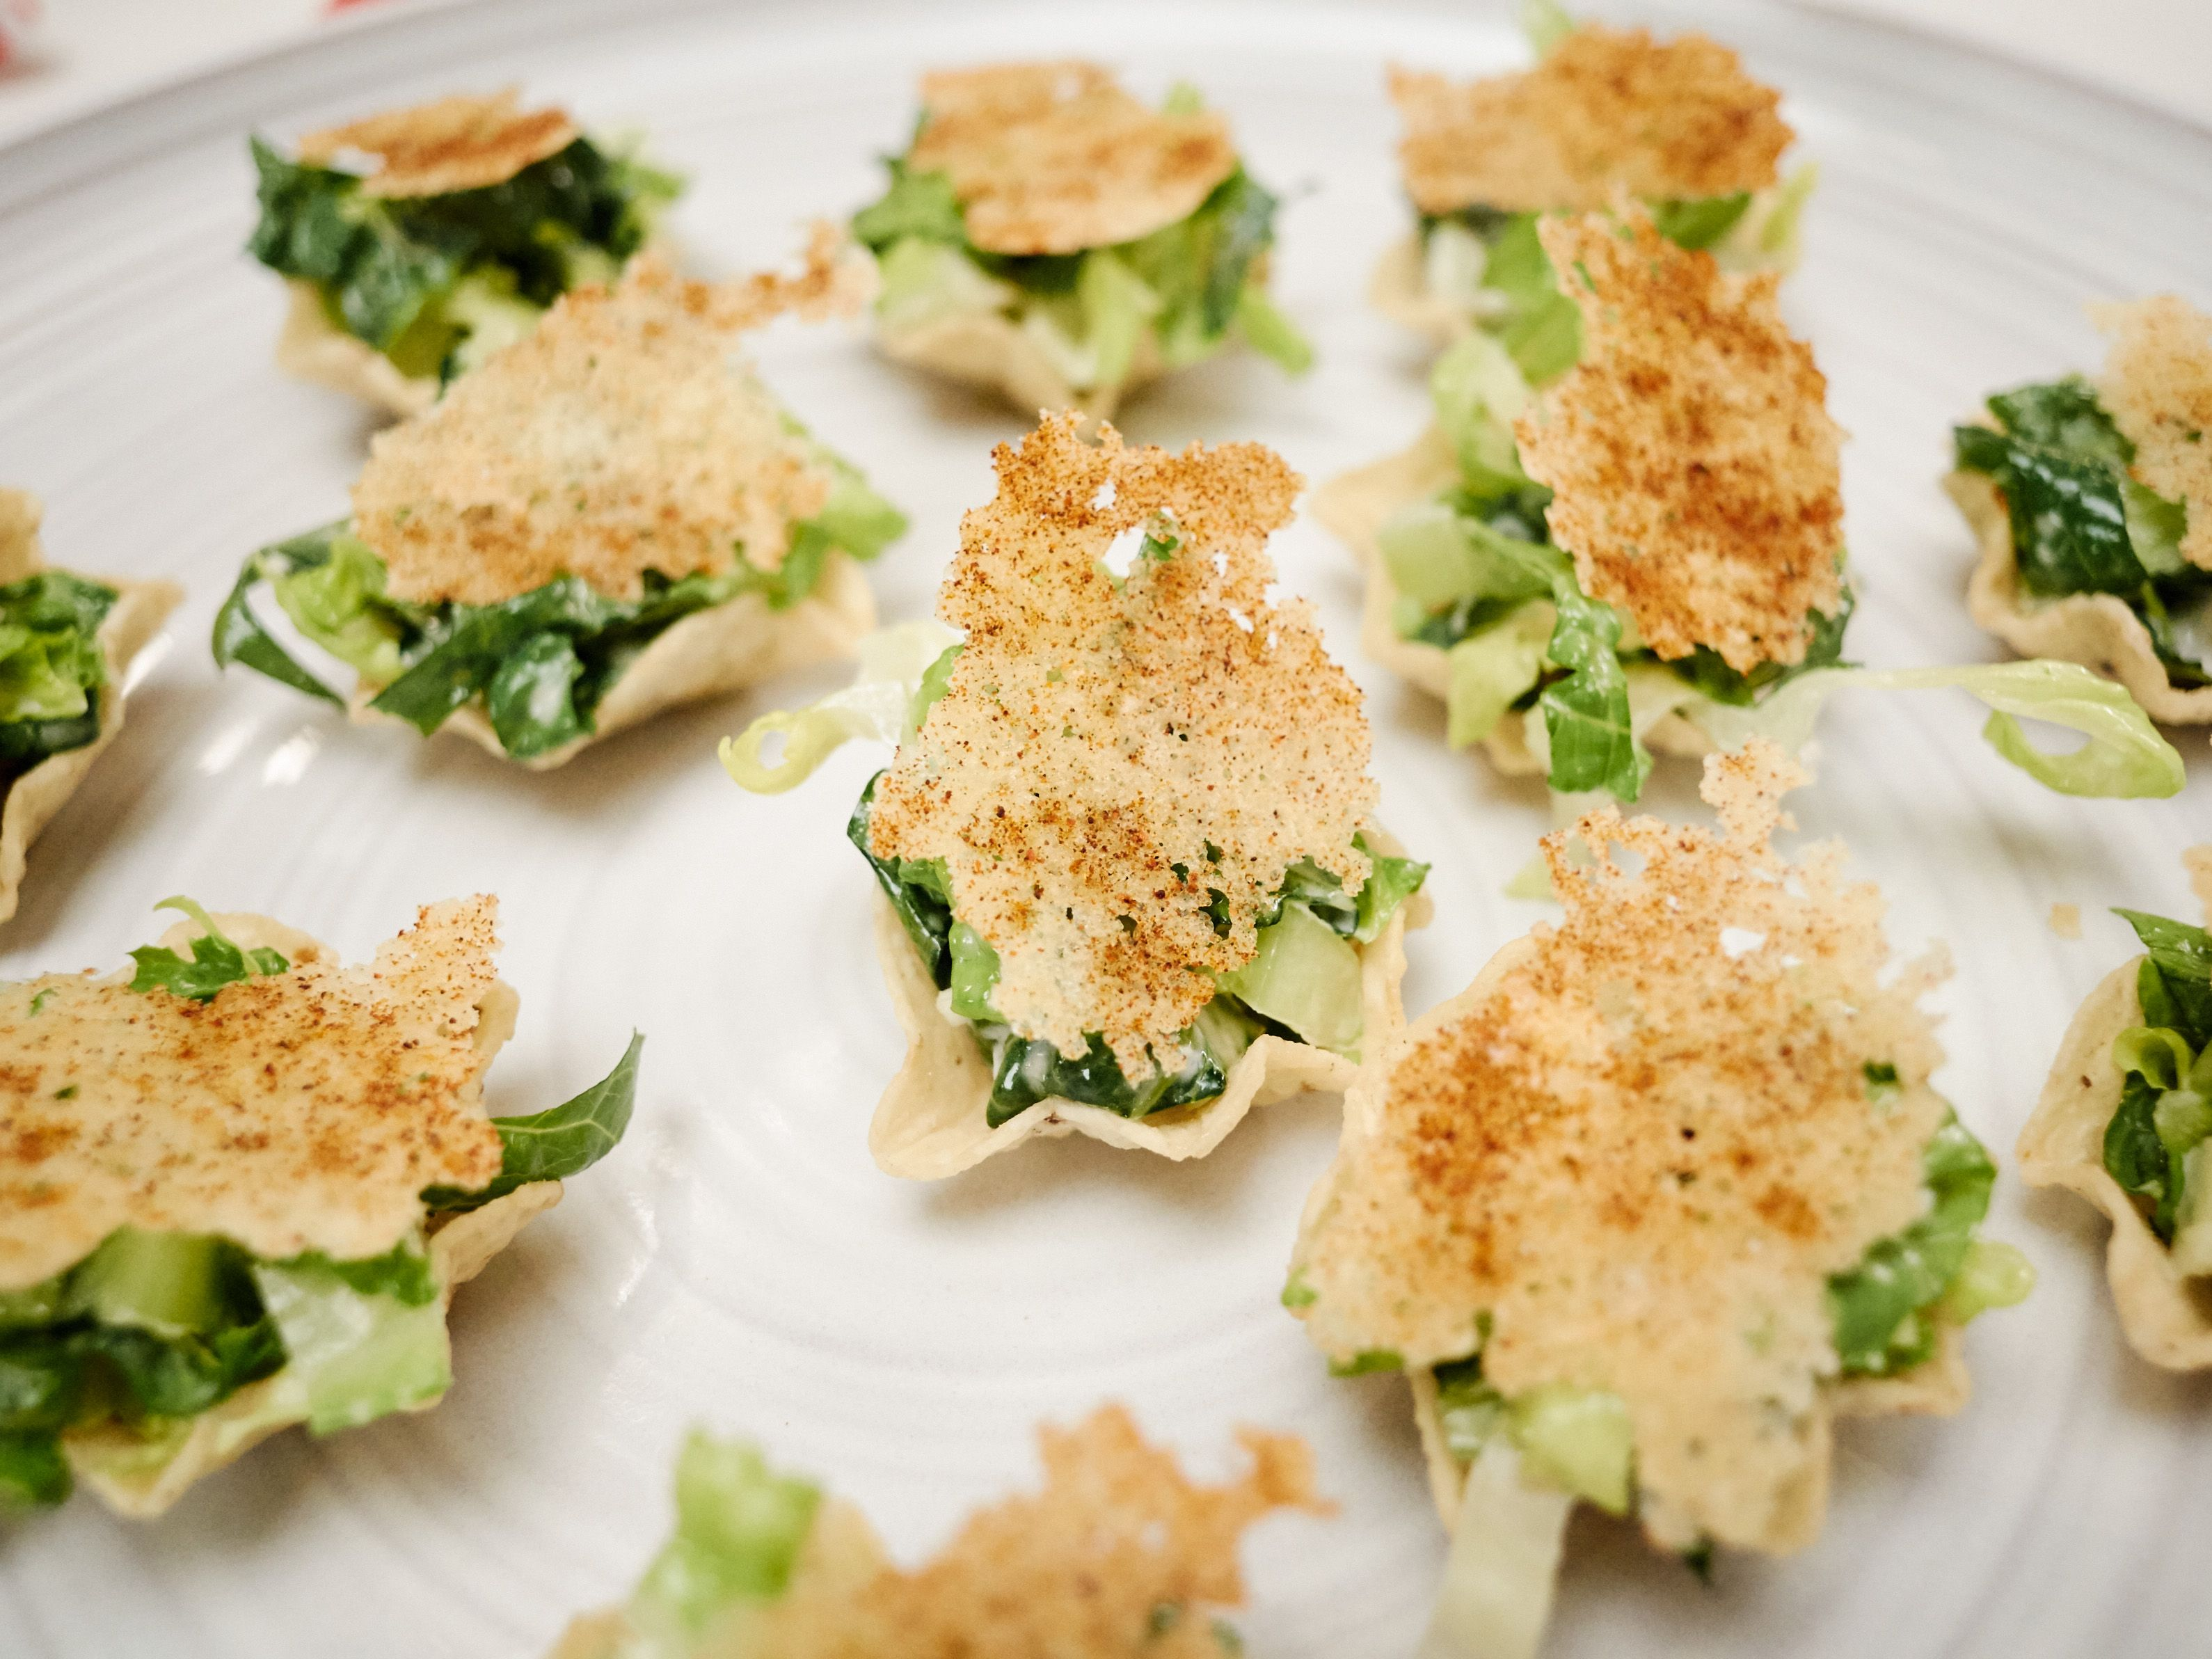 Caesar salad taco bites recipe from giada de laurentiis via food caesar salad taco bites recipe from giada de laurentiis via food network forumfinder Gallery